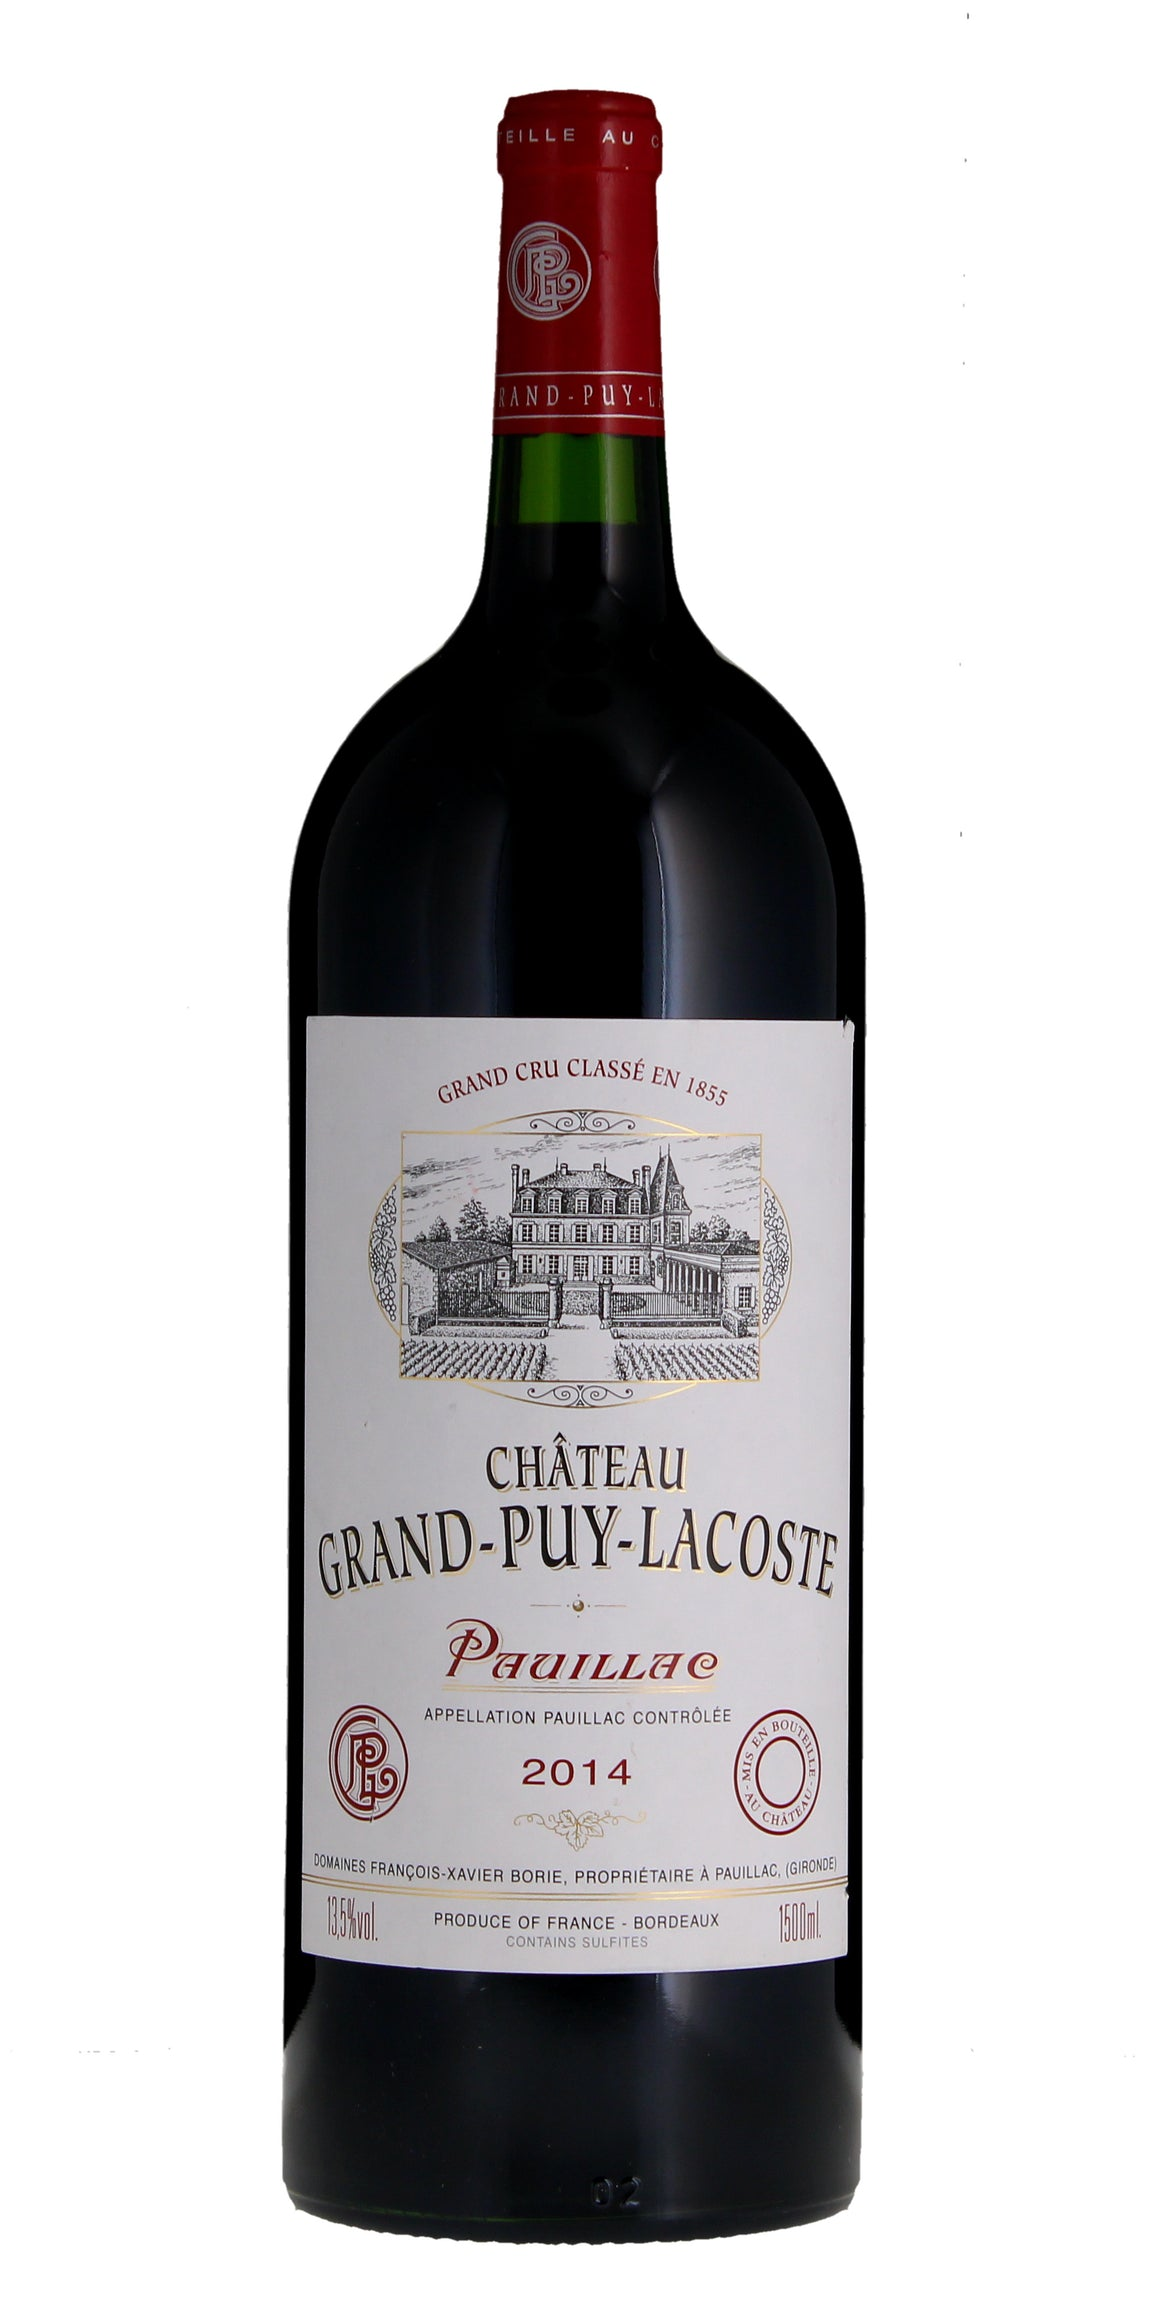 Chateau Grand Puy Lacoste, Pauillac, 2014, Magnum